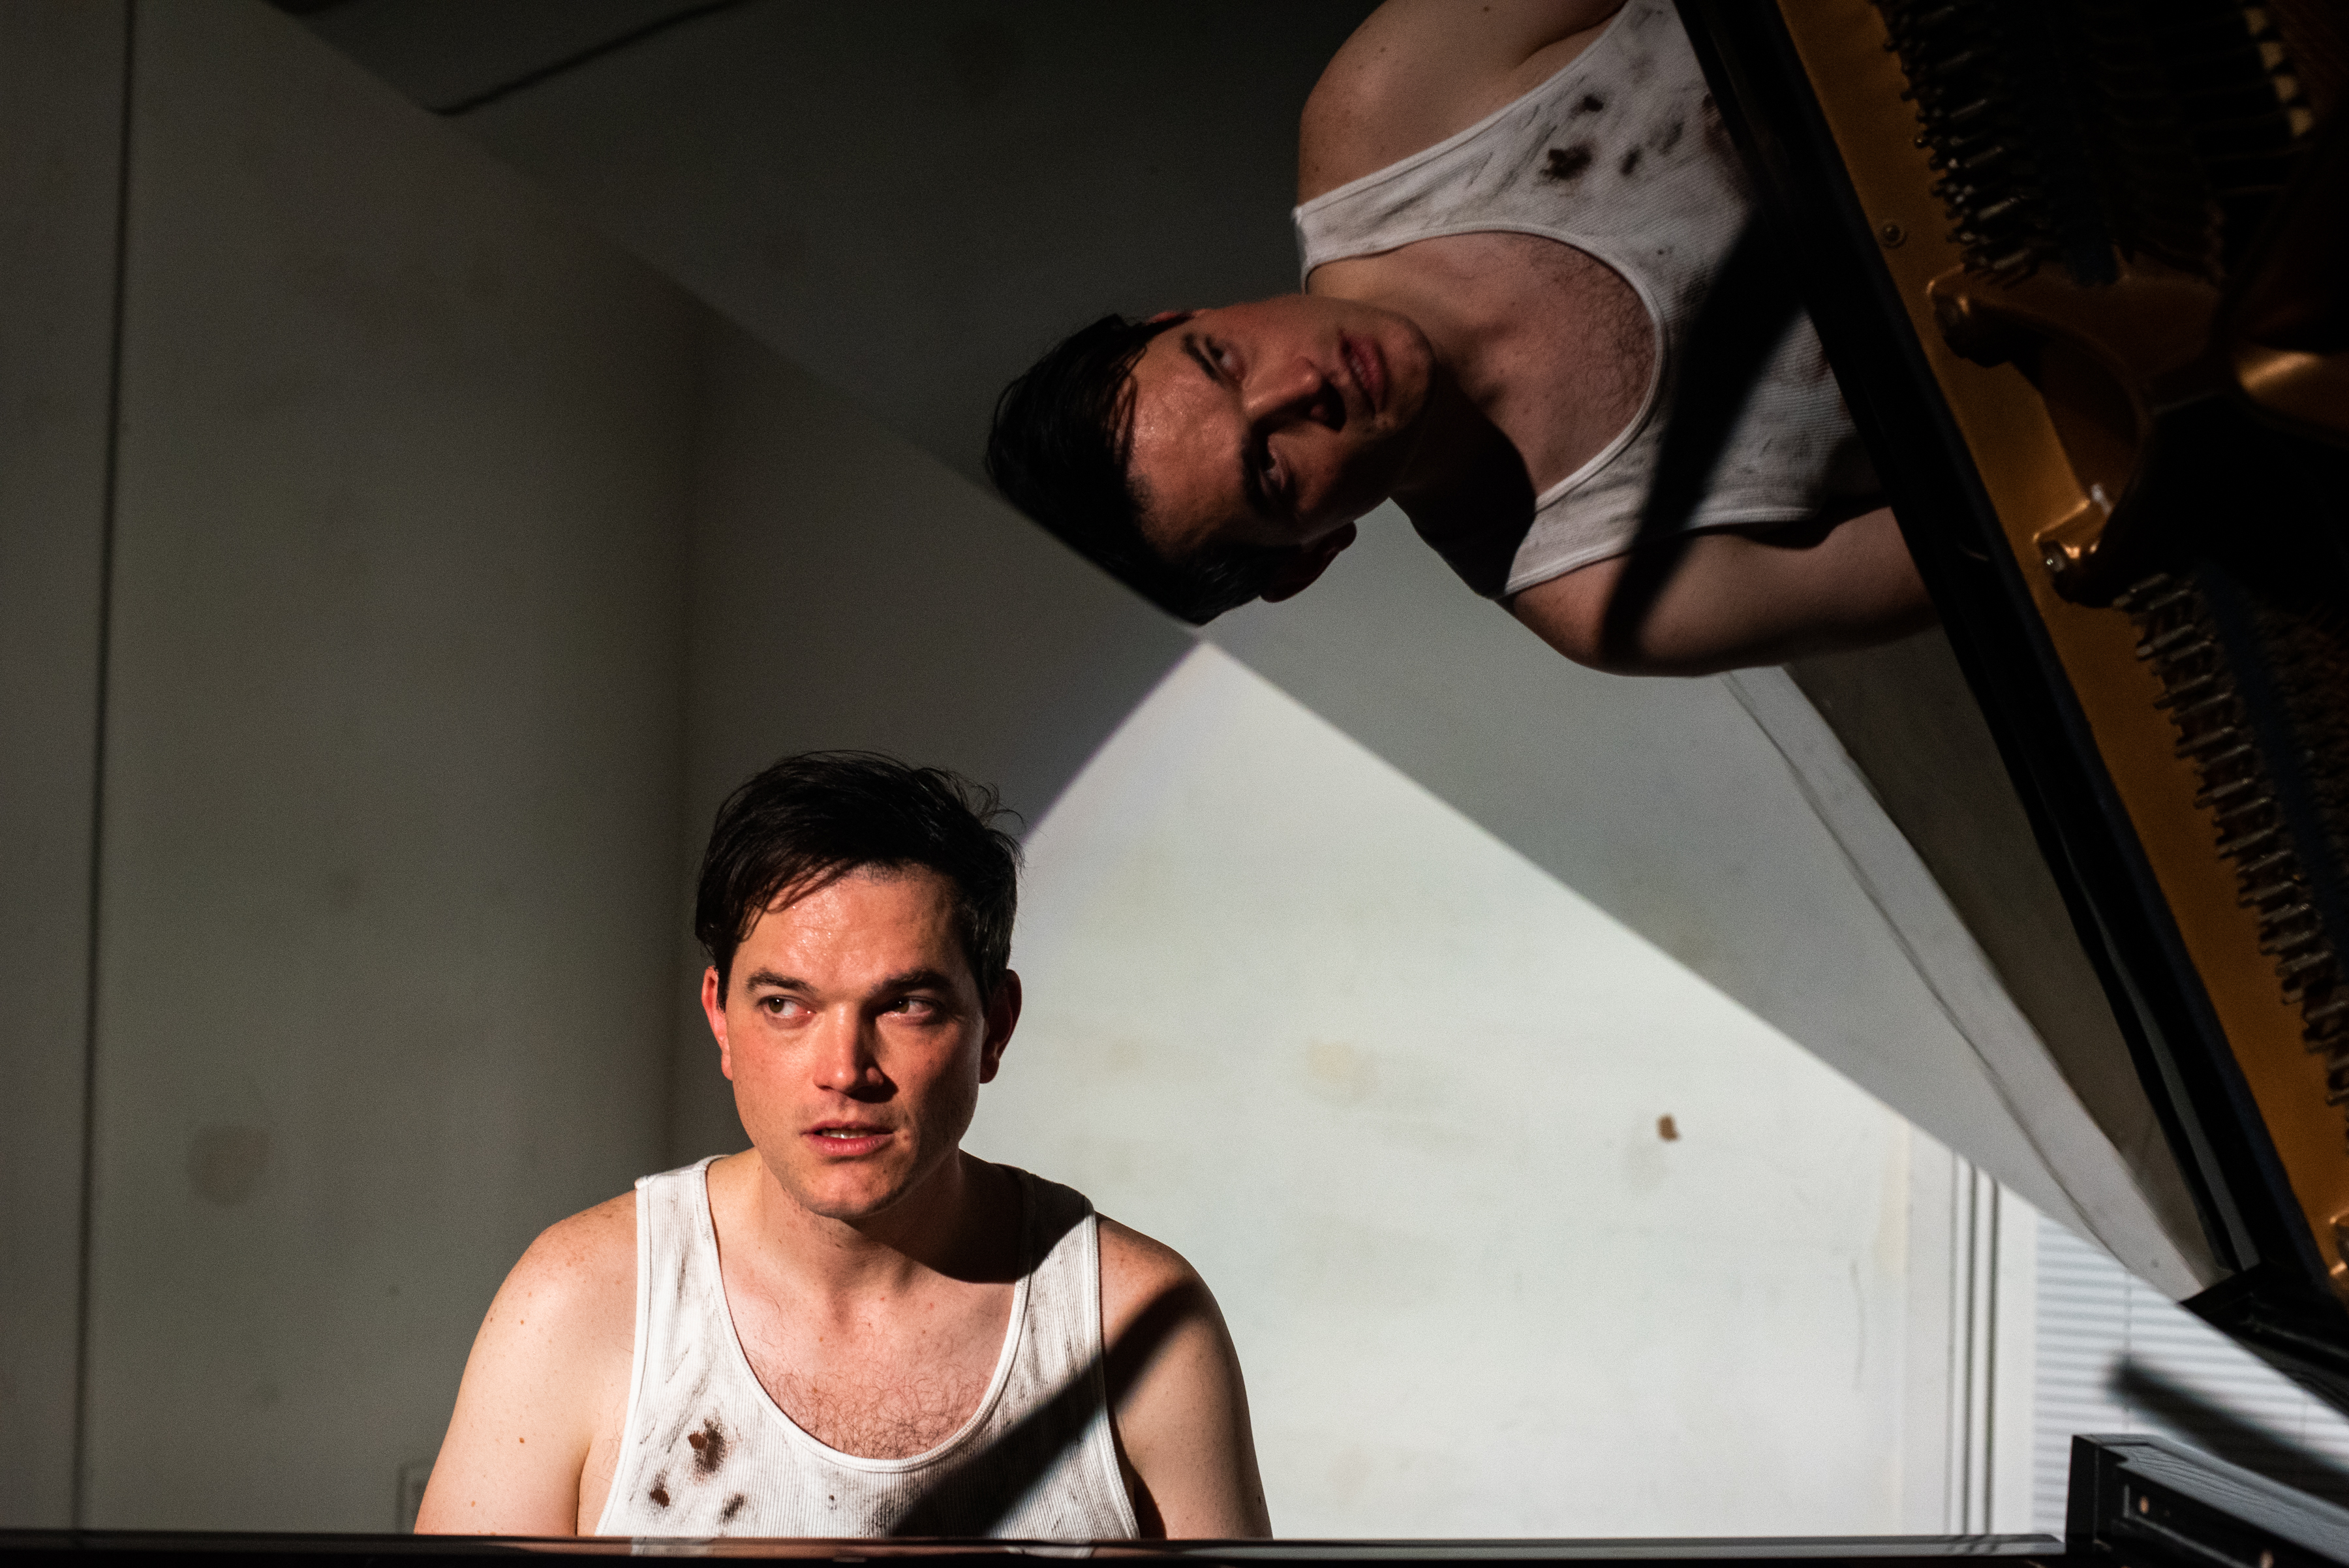 The Recital, by Eva Anderson and Michael Cassady, directed by Eric Hoff